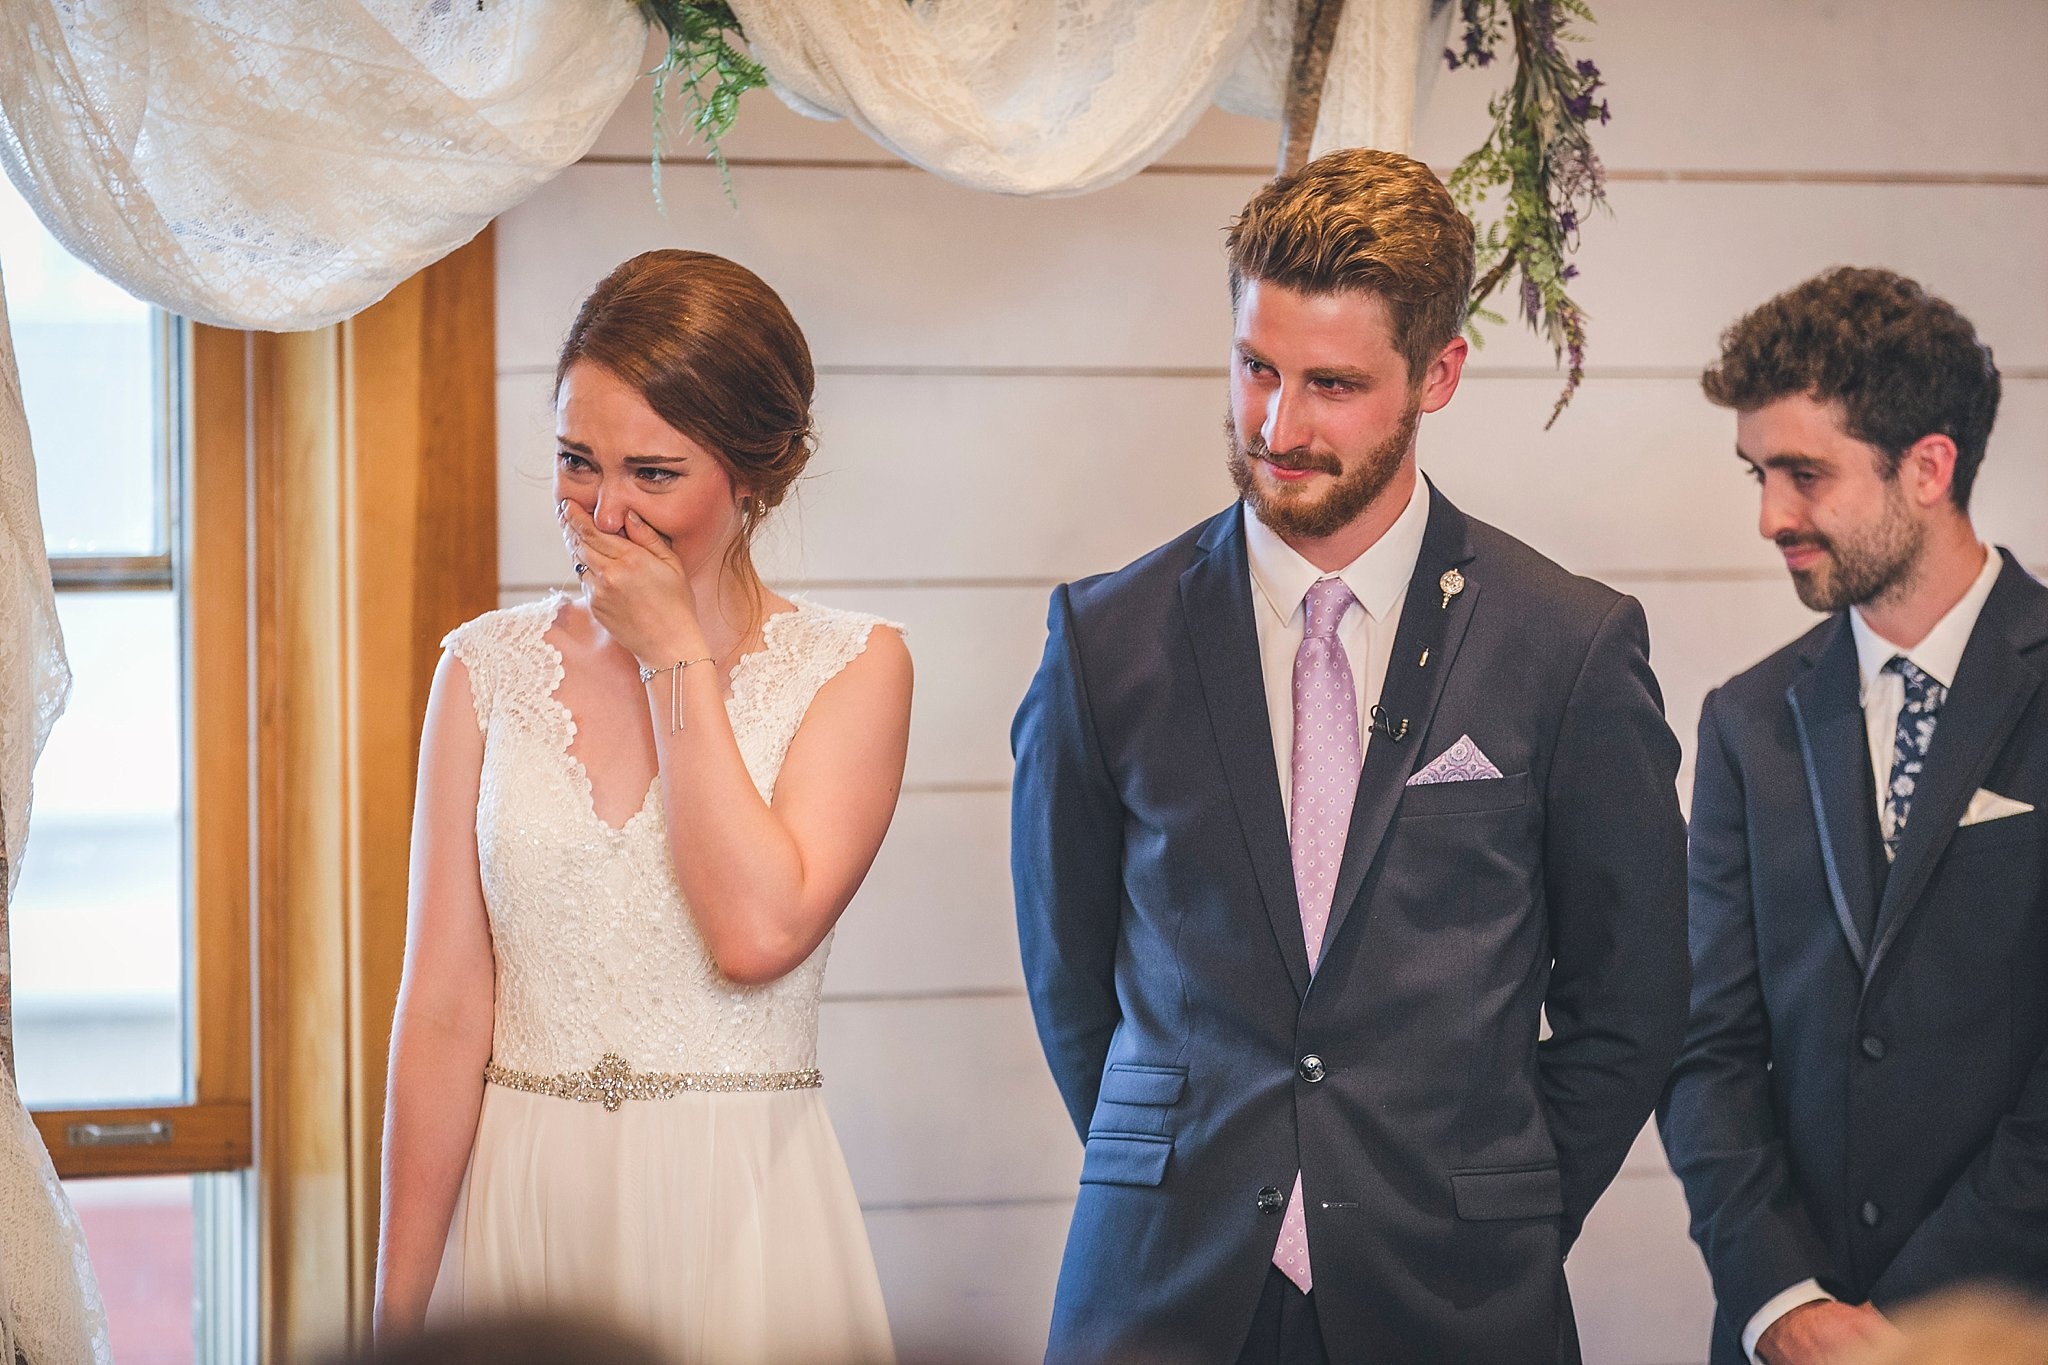 Bride reacts to speeches at her wedding at the Rocket Room in downtown St. John's, Newfoundland